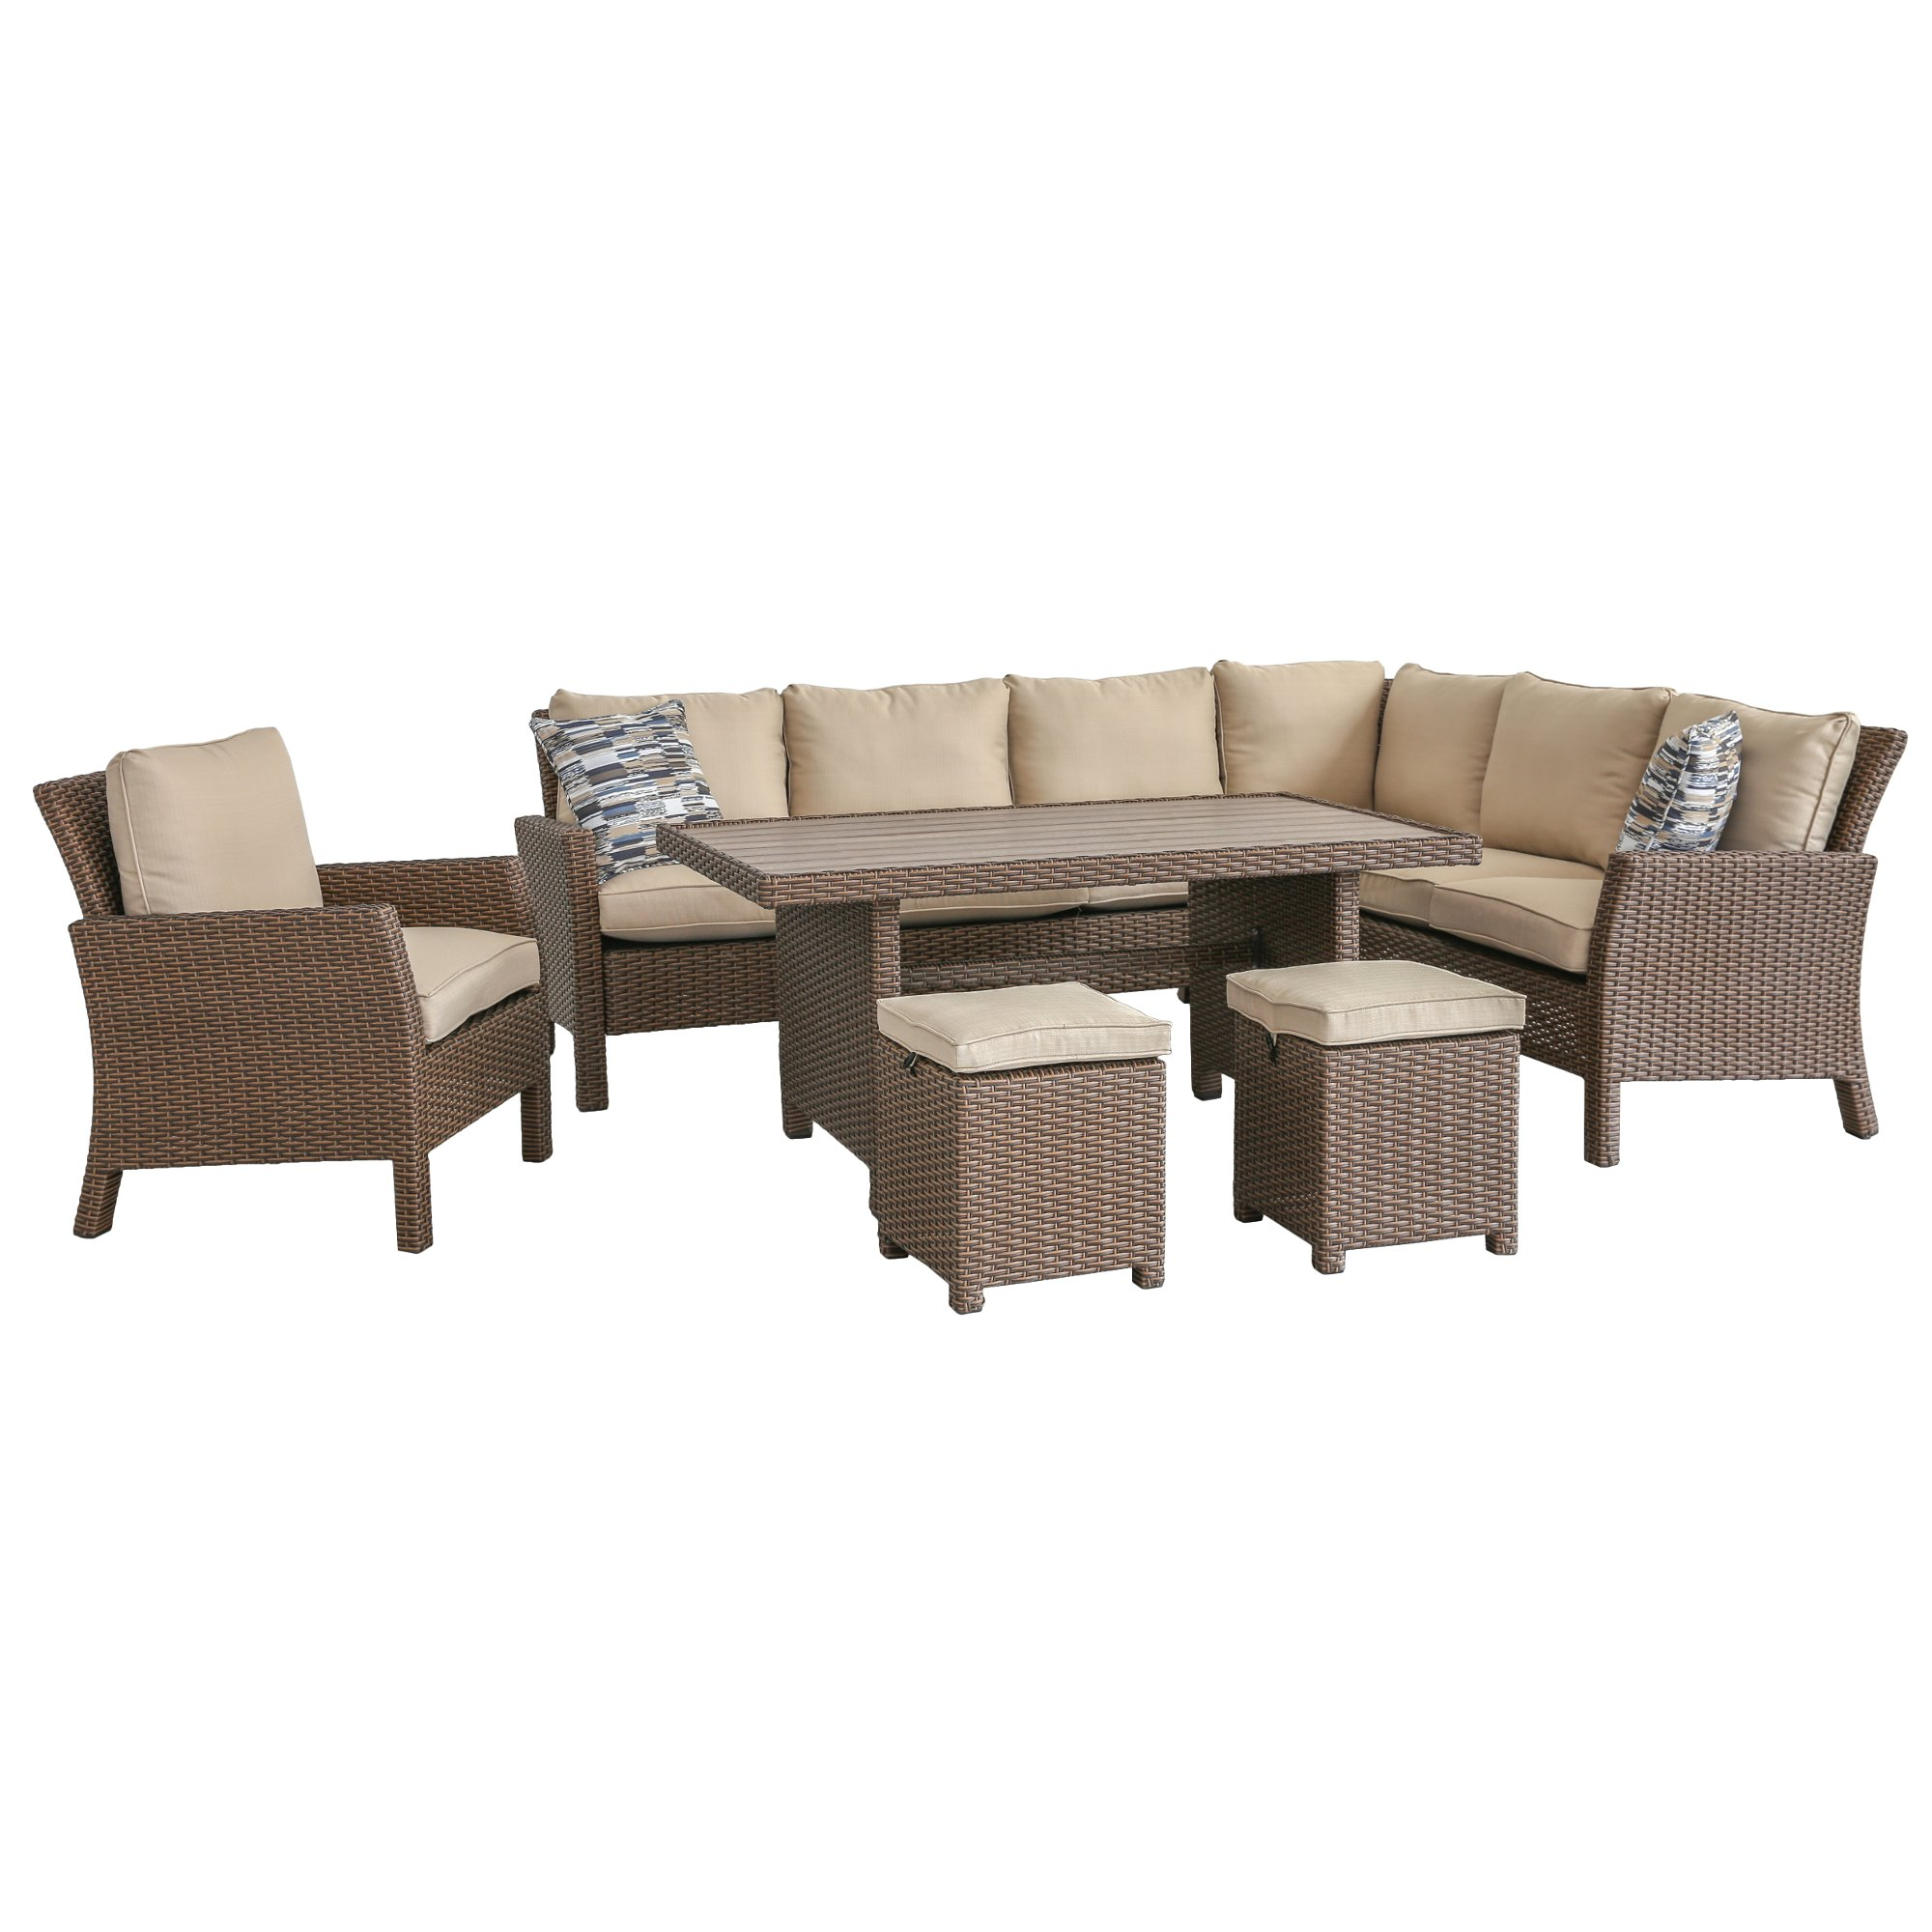 5 Piece Outdoor Patio Furniture Set Arcadia RC Willey Furniture